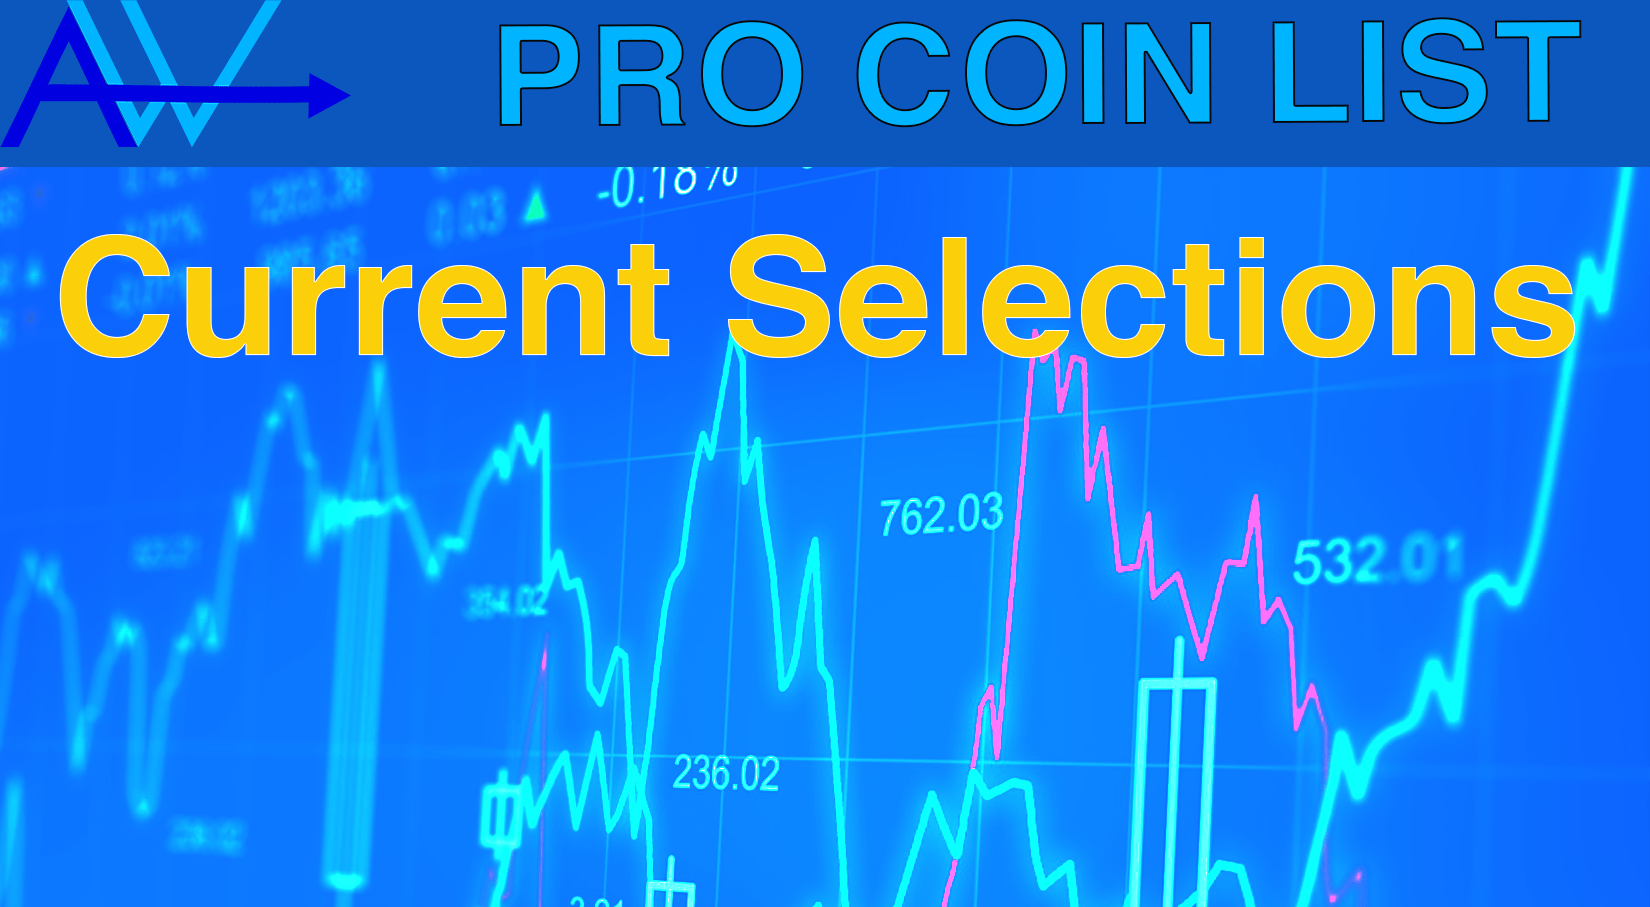 PRO Good CRYPTOS List<br><span style='color:#00adee;font-size:.8em'>8 High Multiple Coins, 4 Blue Chips, 4 ok Long Term coins and 5 to get away from.</span>